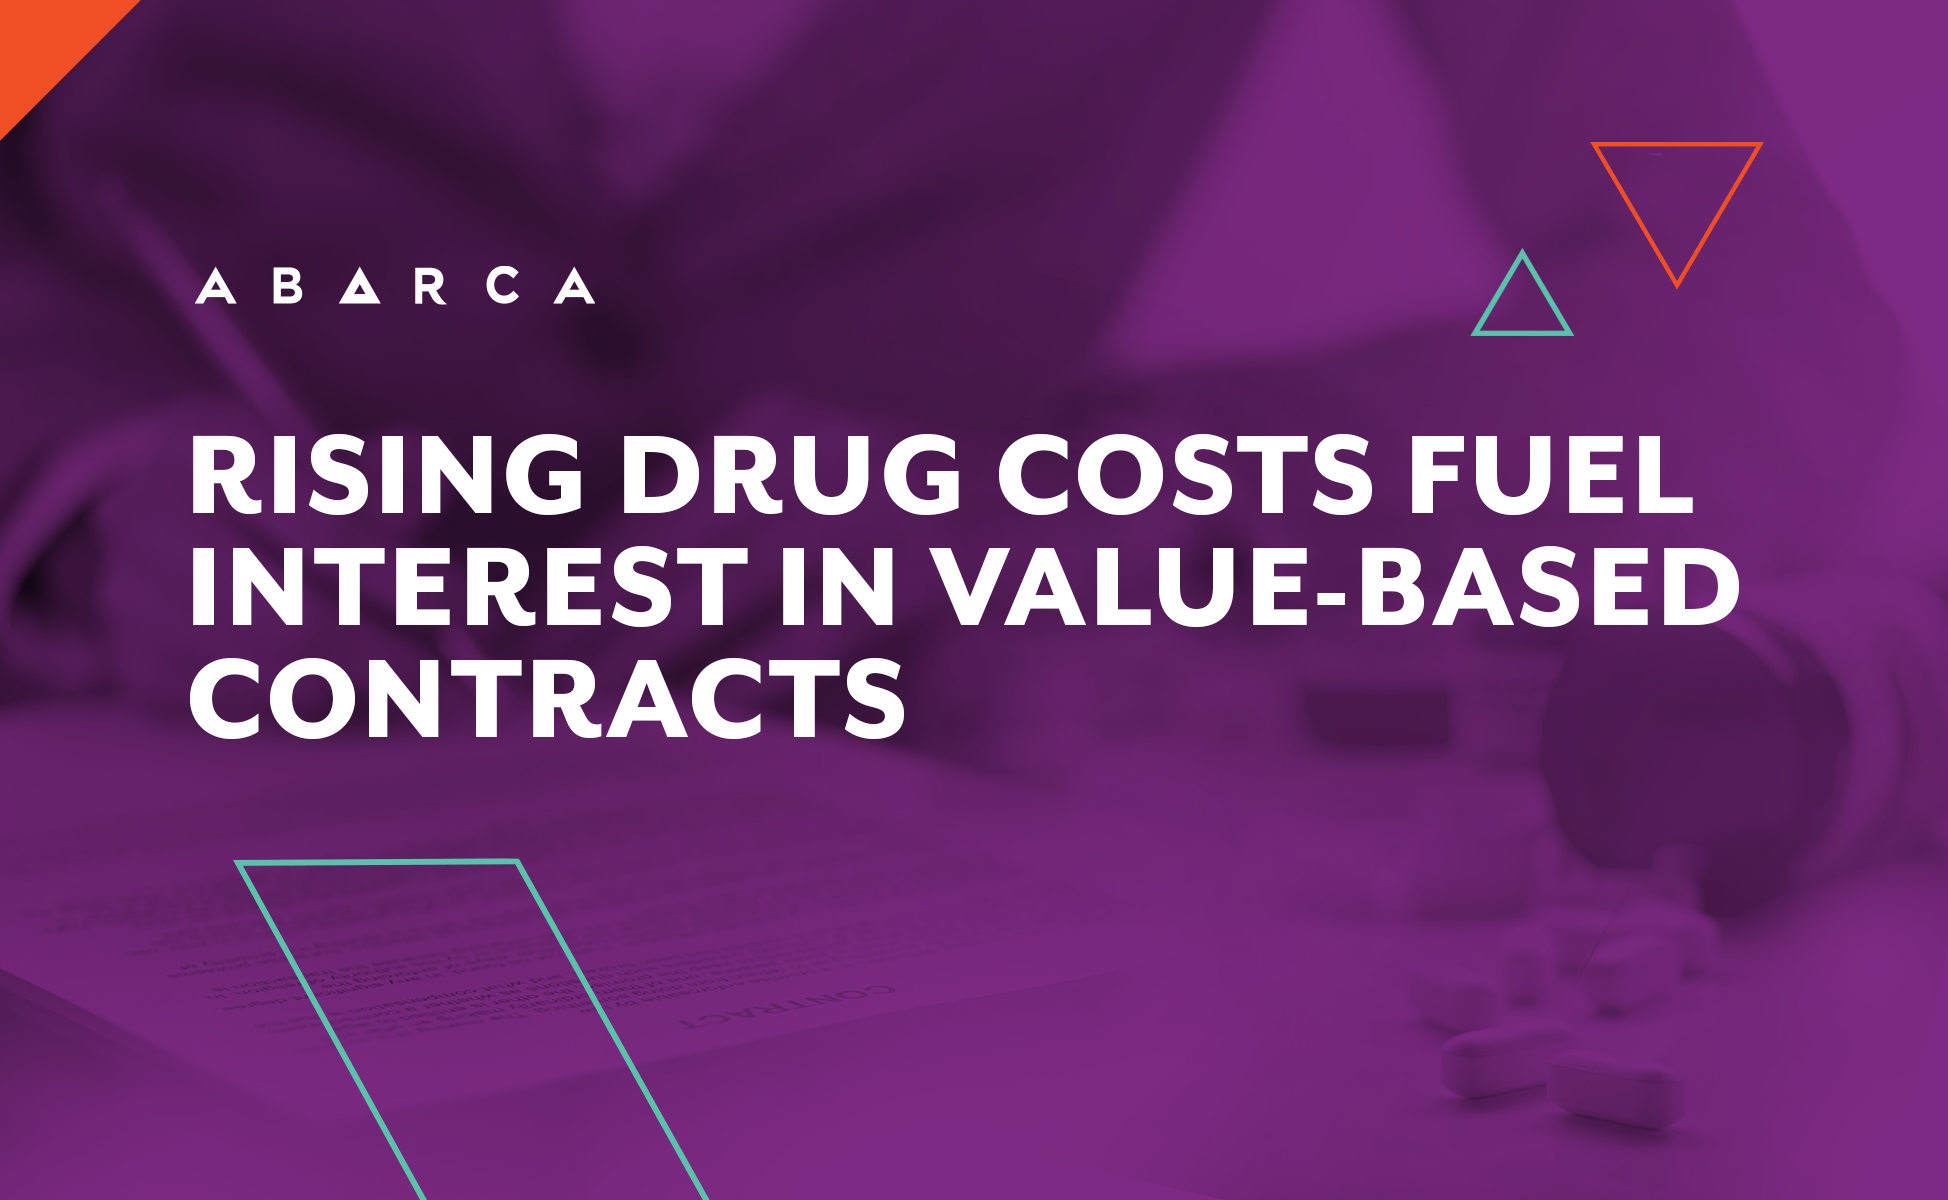 RISING DRUG COSTS FUEL INTEREST IN VALUE-BASED CONTRACTS